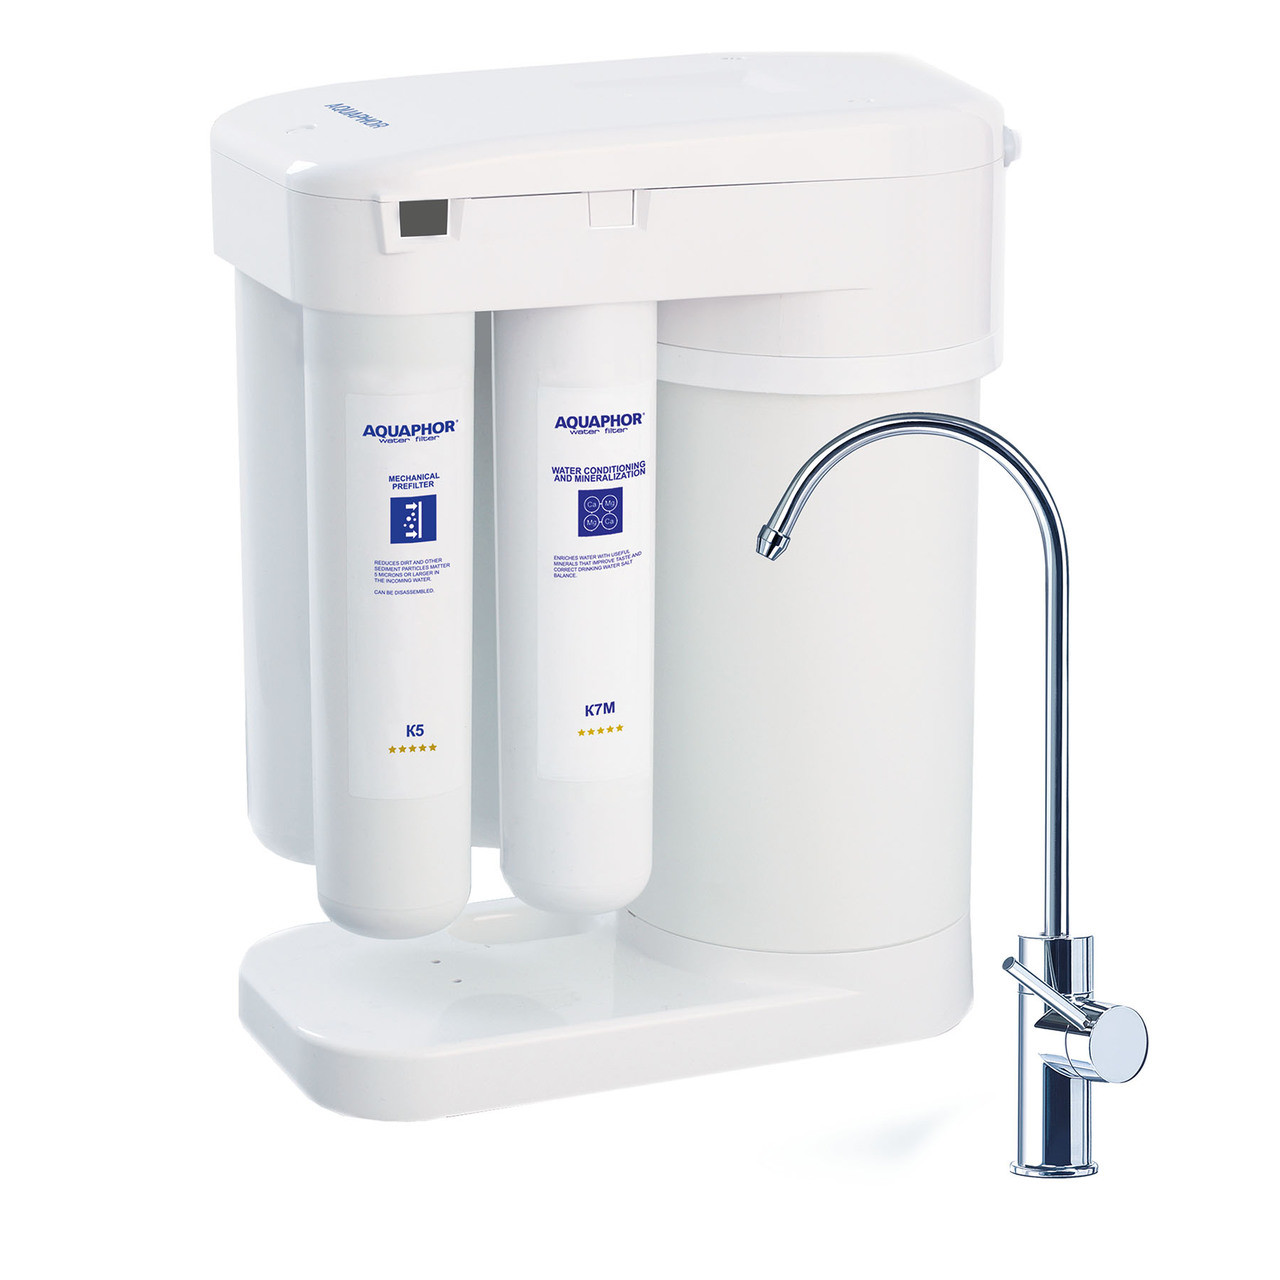 aquaphor dwm 101 compact ro reverse osmosis water filter system. Black Bedroom Furniture Sets. Home Design Ideas